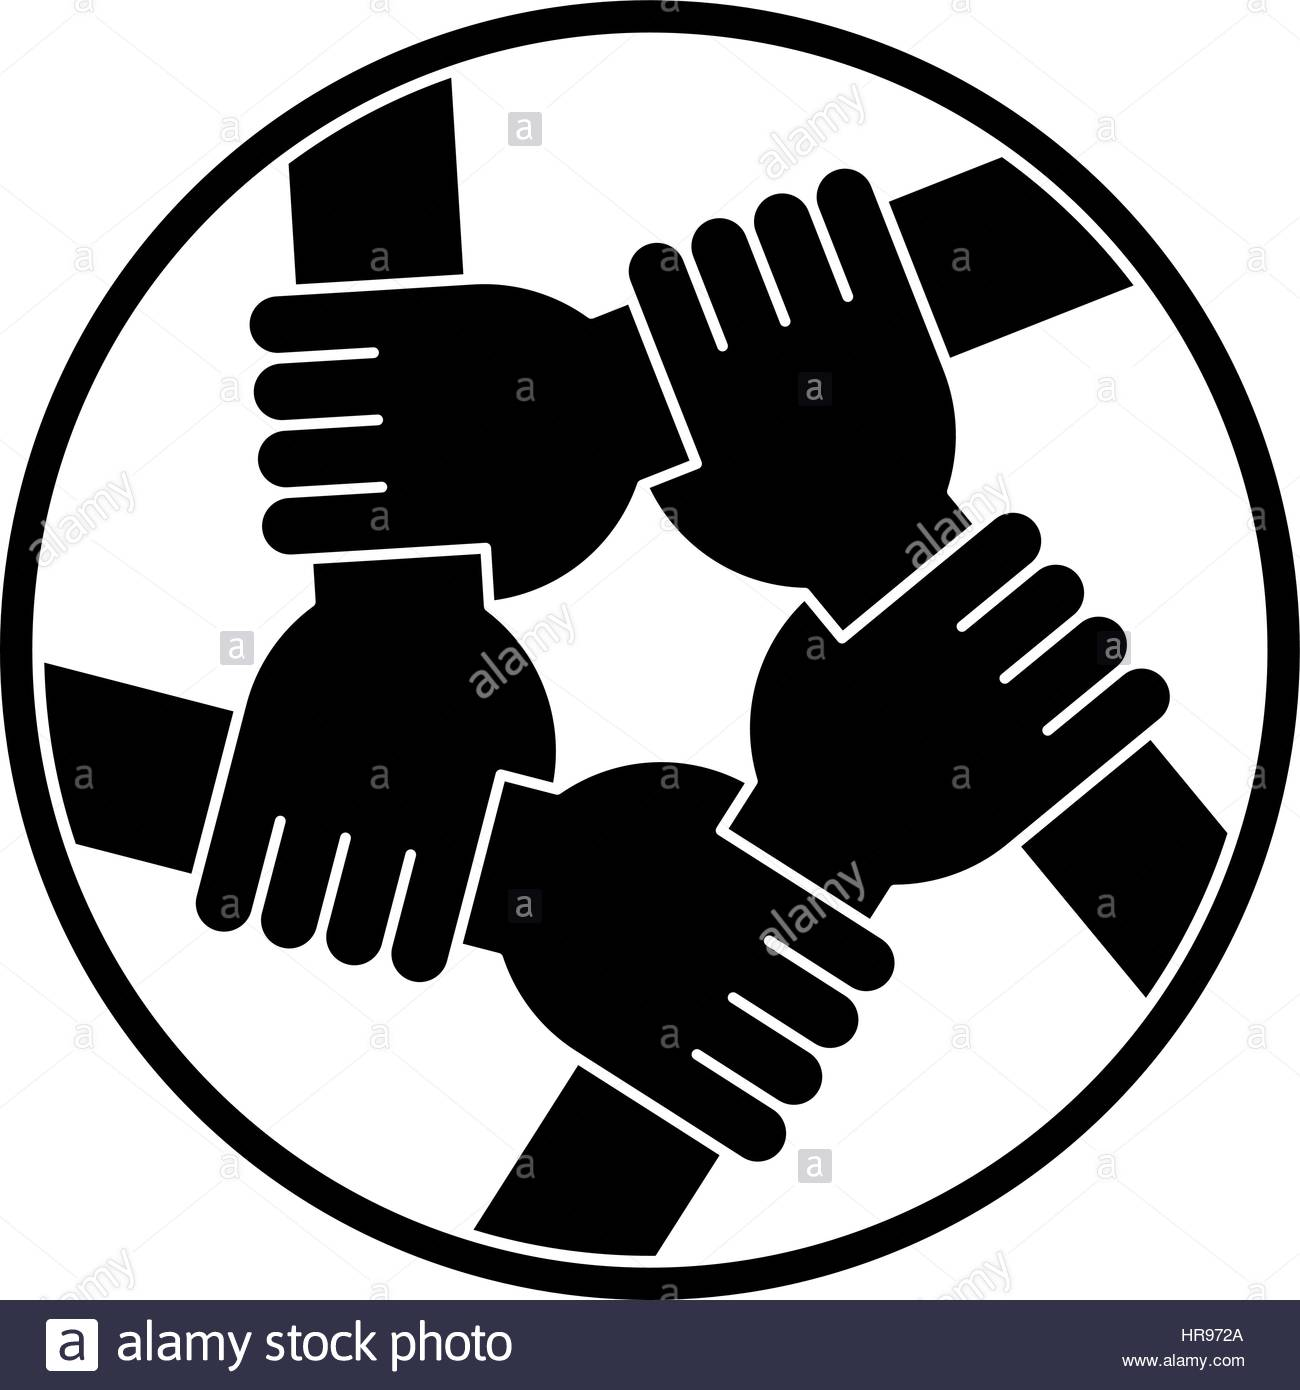 Vector Drawing Lines Unity : Vector illustration of five human hands silhouettes